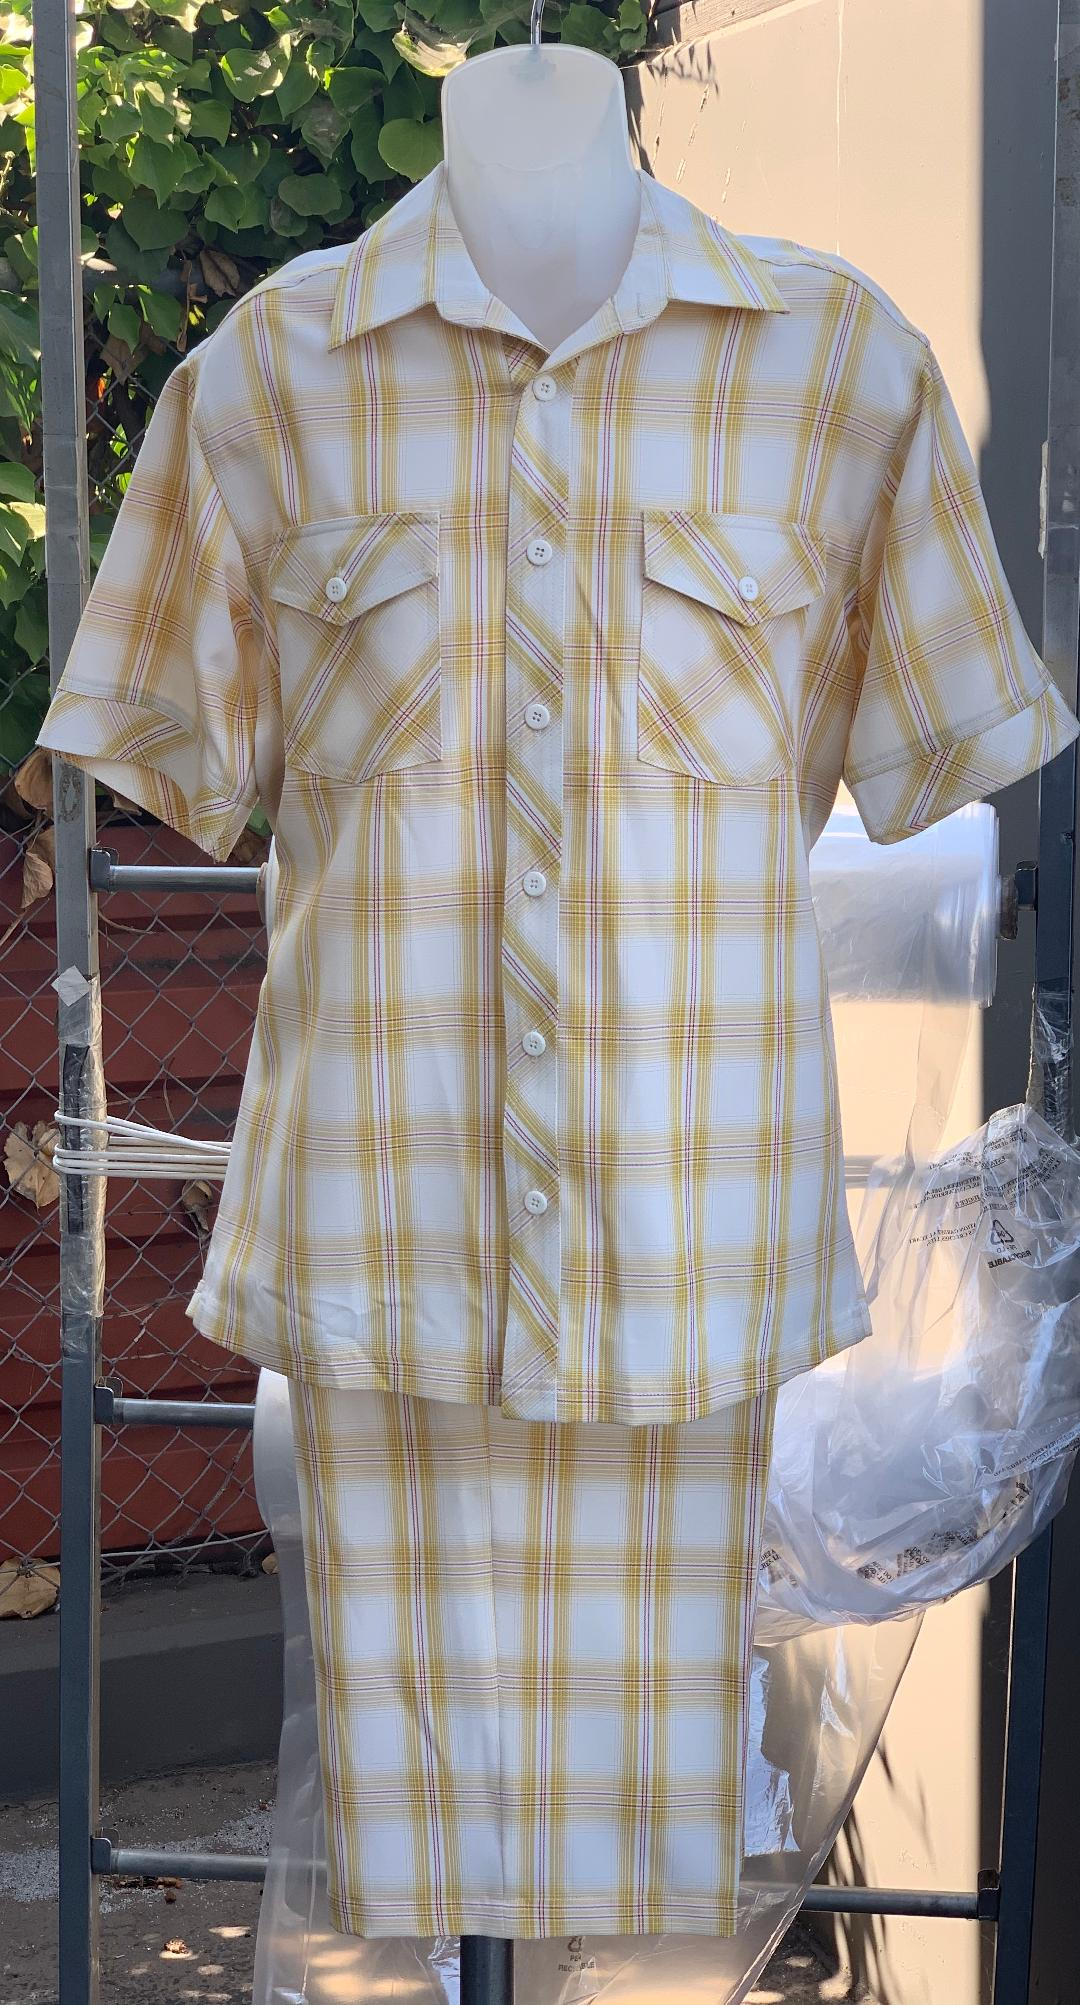 Crosshatch Checkered Dual Pocket Short Sleeve 2pc Walking Suit Shorts Set - Yellow